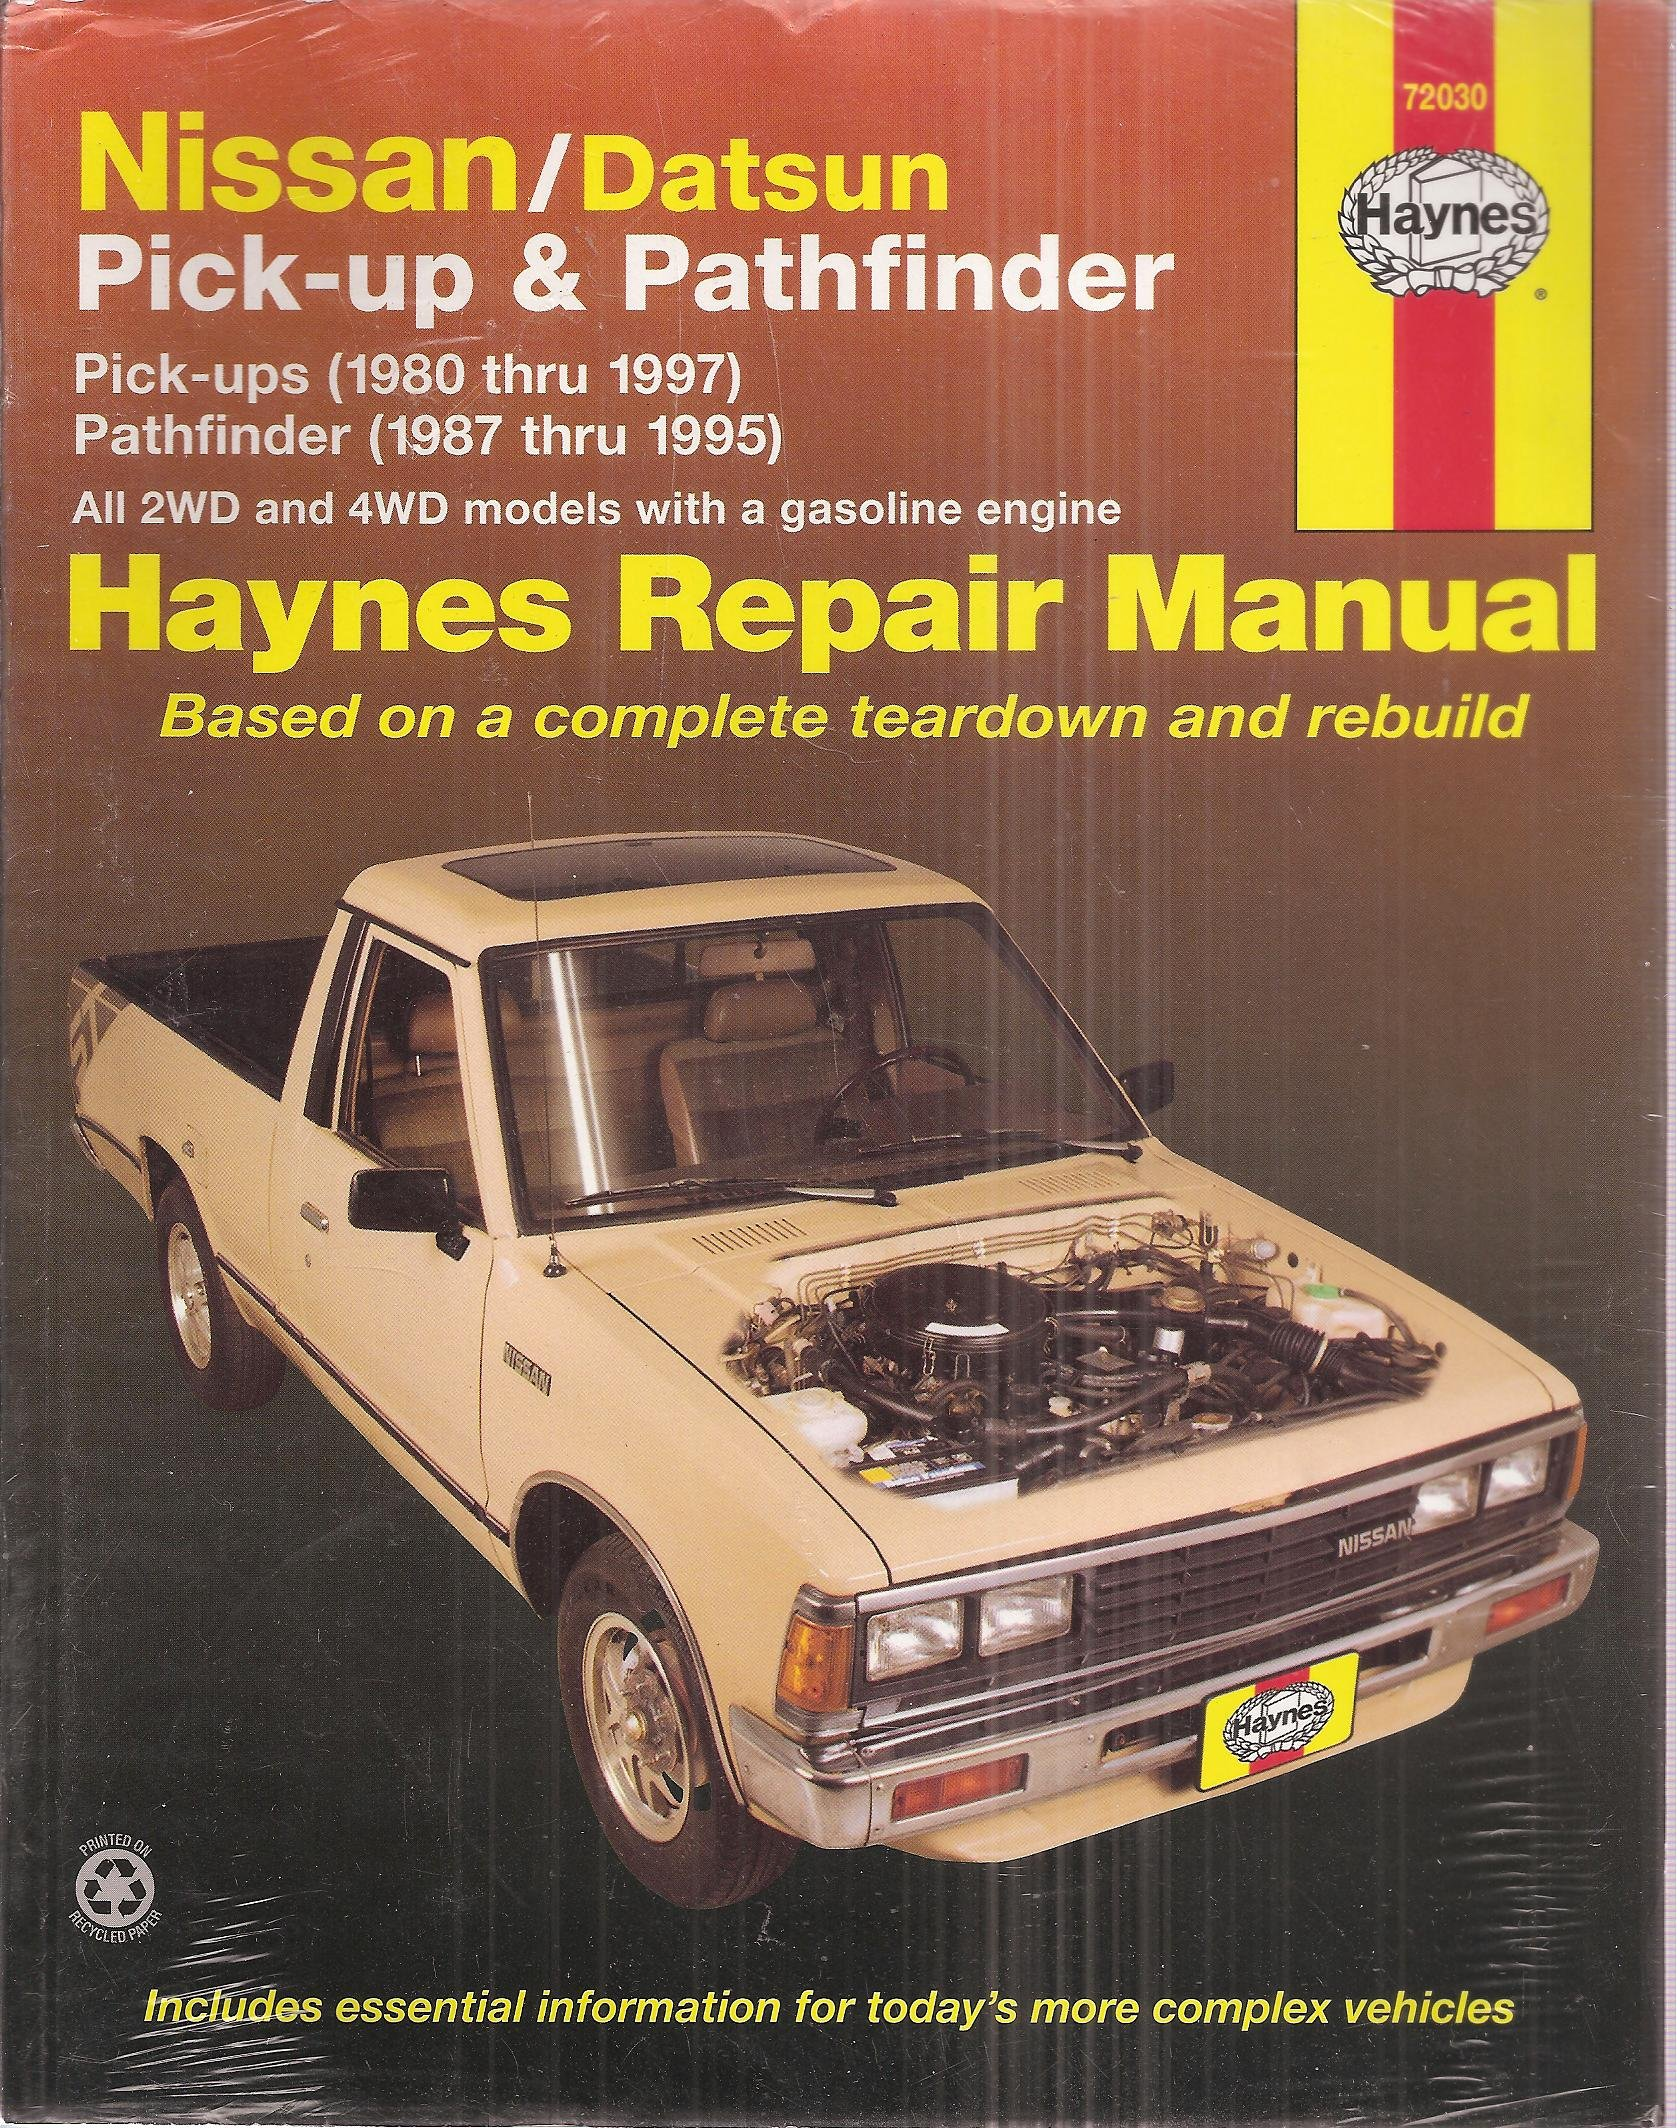 Haynes Repair Manual: Nissan /Datsun Pick-up and Pathfinder - Pick-ups 1980  Thru 1997/ Pathfinder 1987 Thru 1995 (All 2WD and 4WD Models with a  Gasoline ...